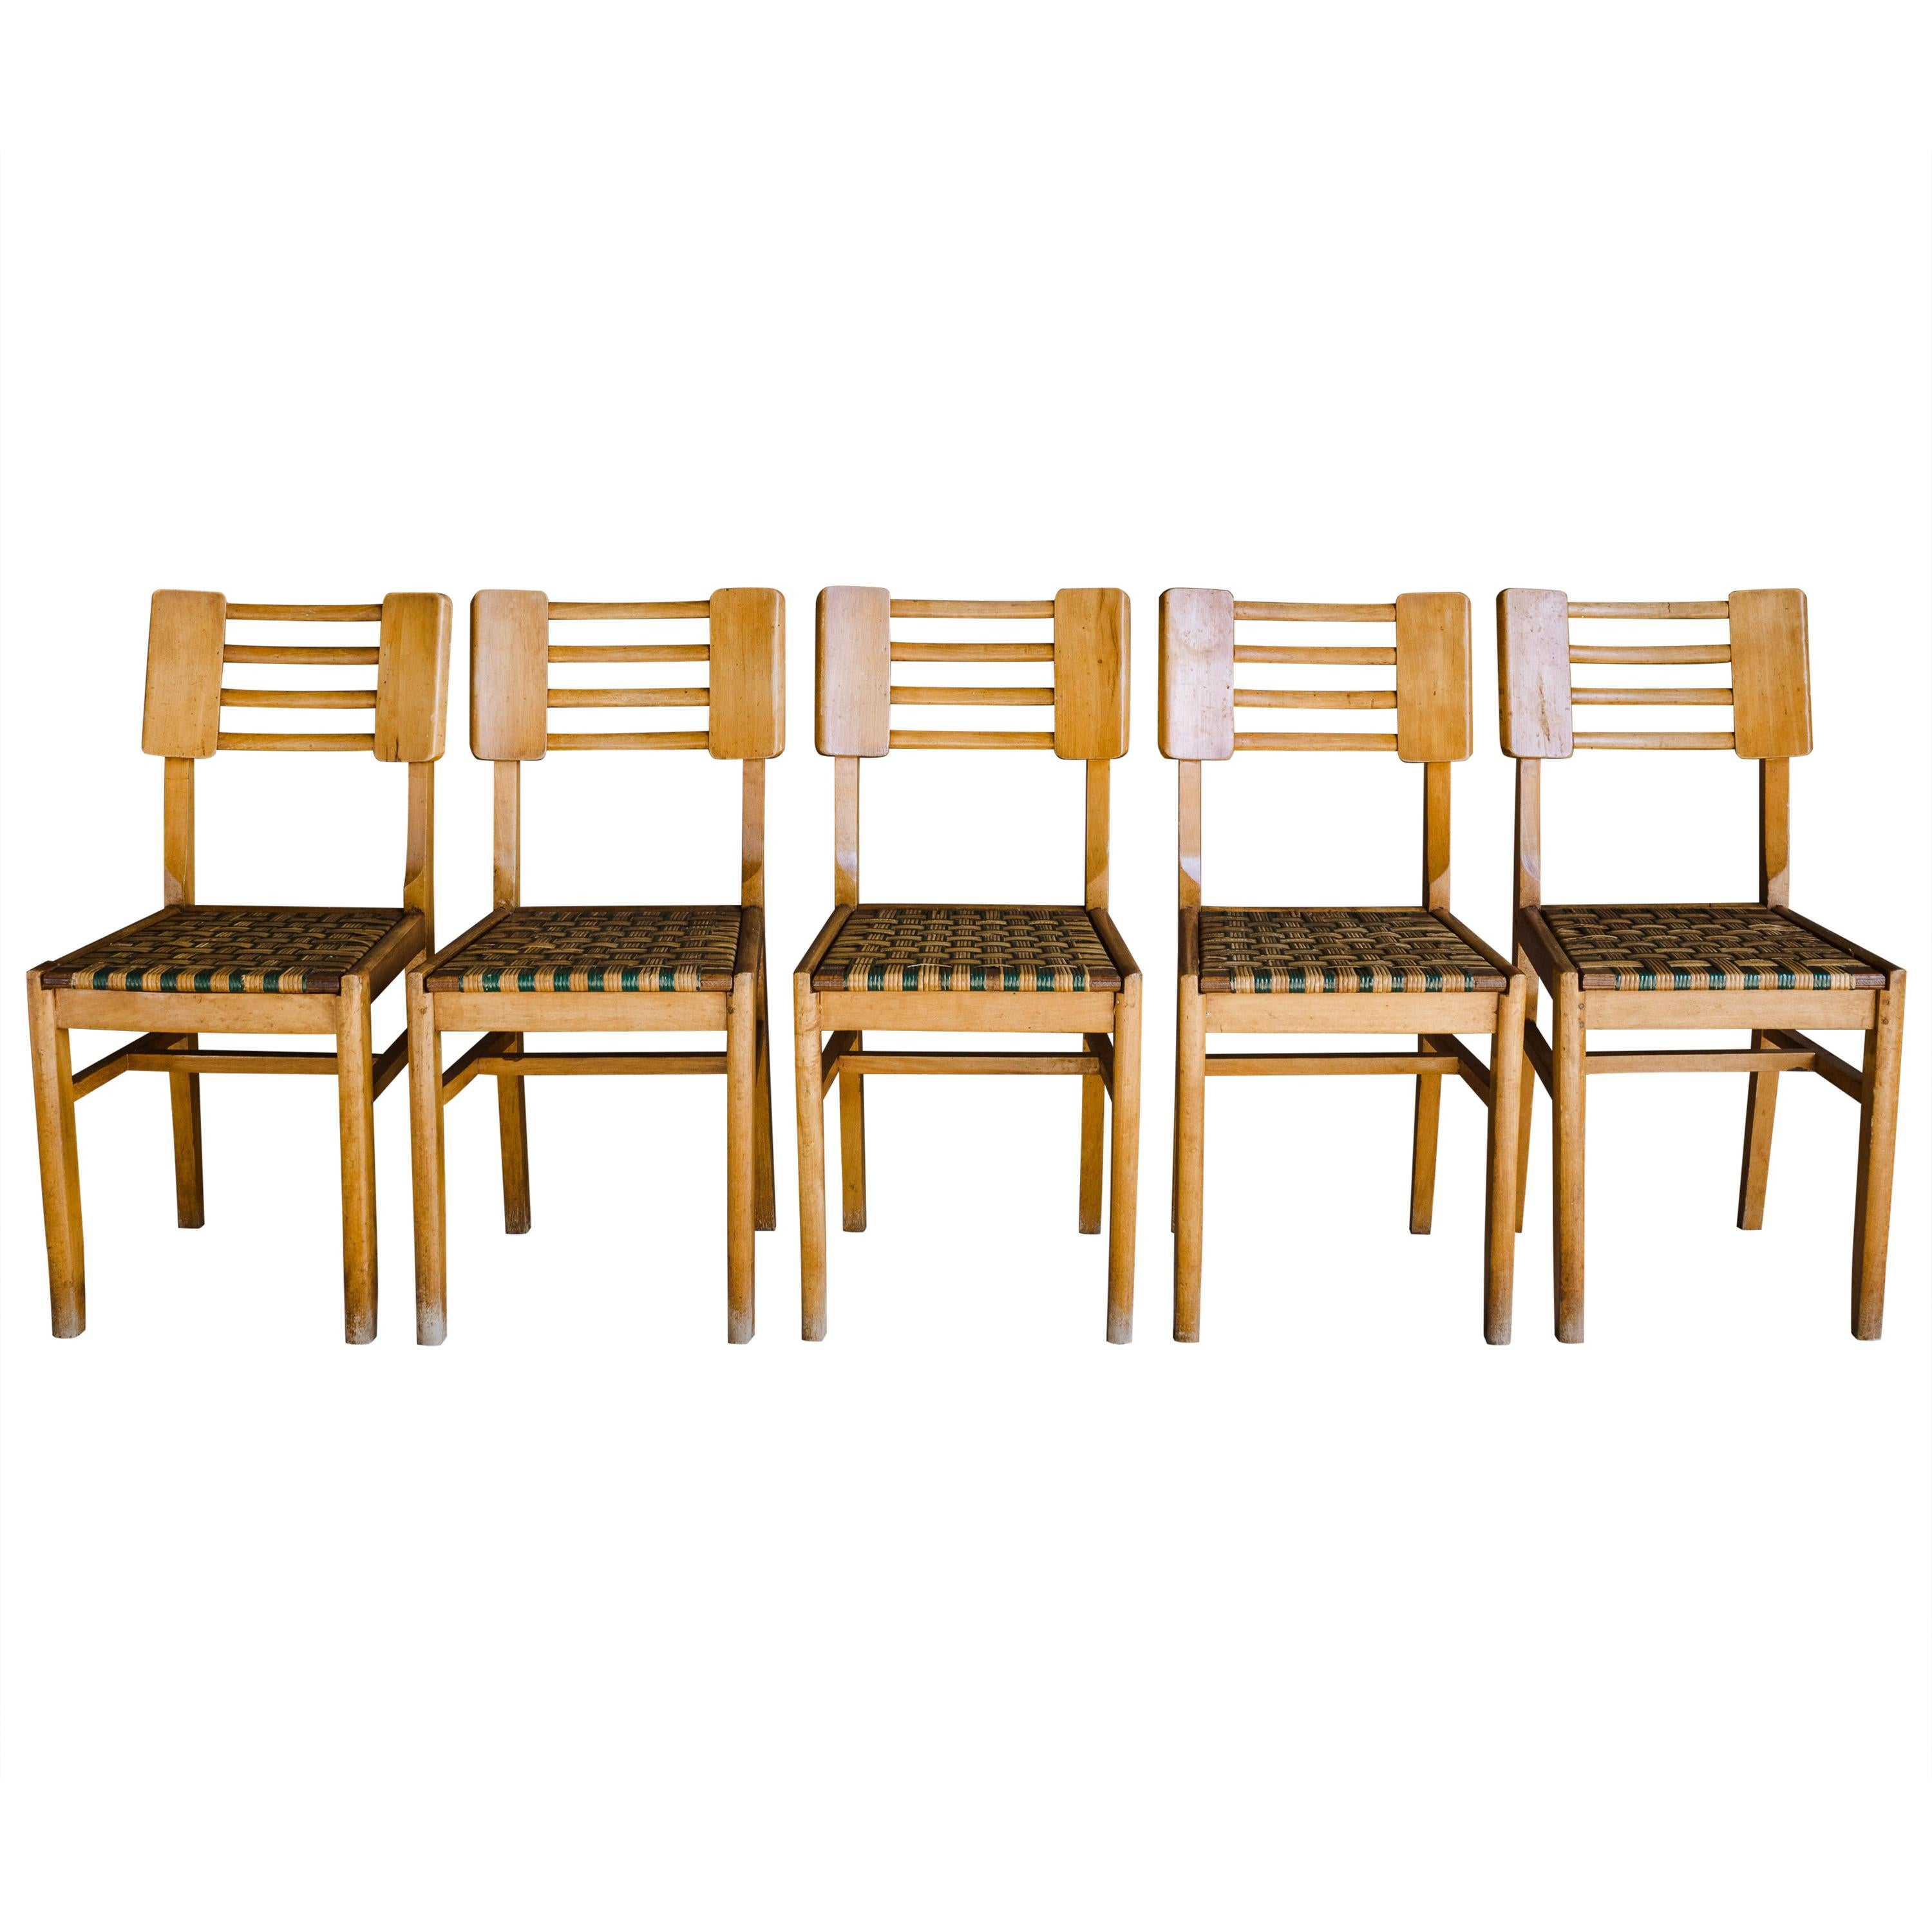 Set of Five Dining Chairs by Pierre Cruege, France, 1940s